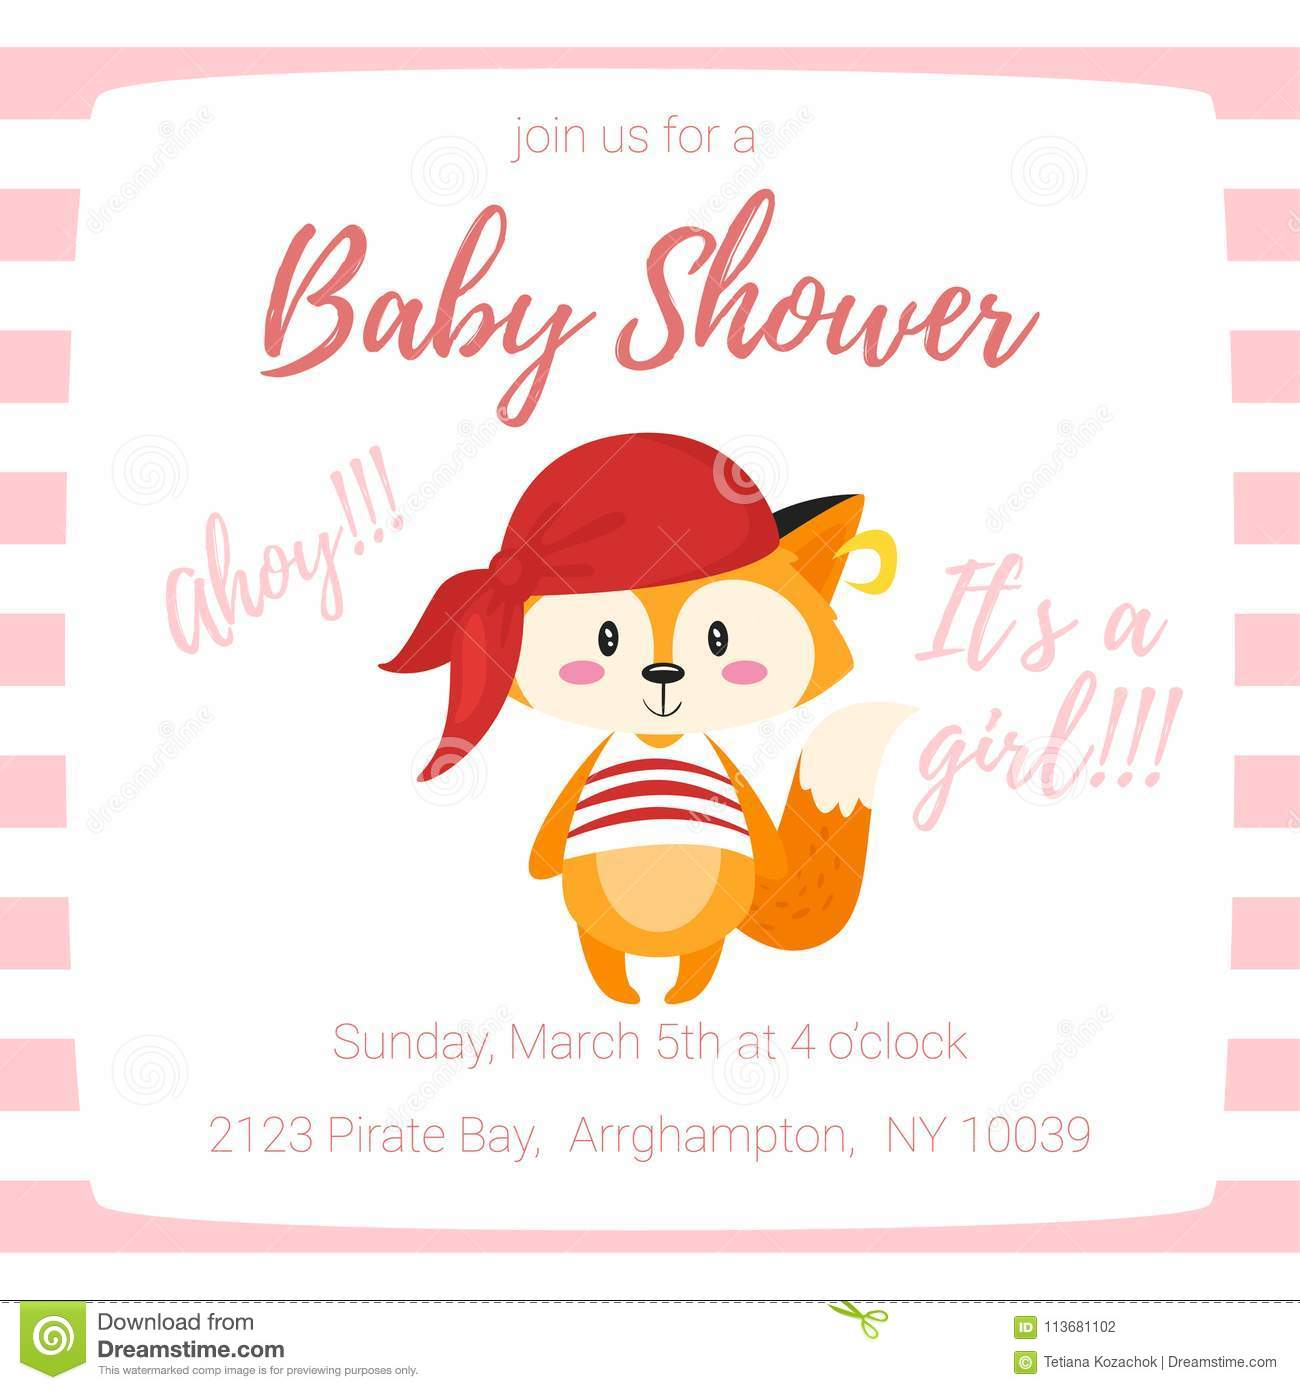 Baby shower invitation stock vector. Illustration of greeting ...